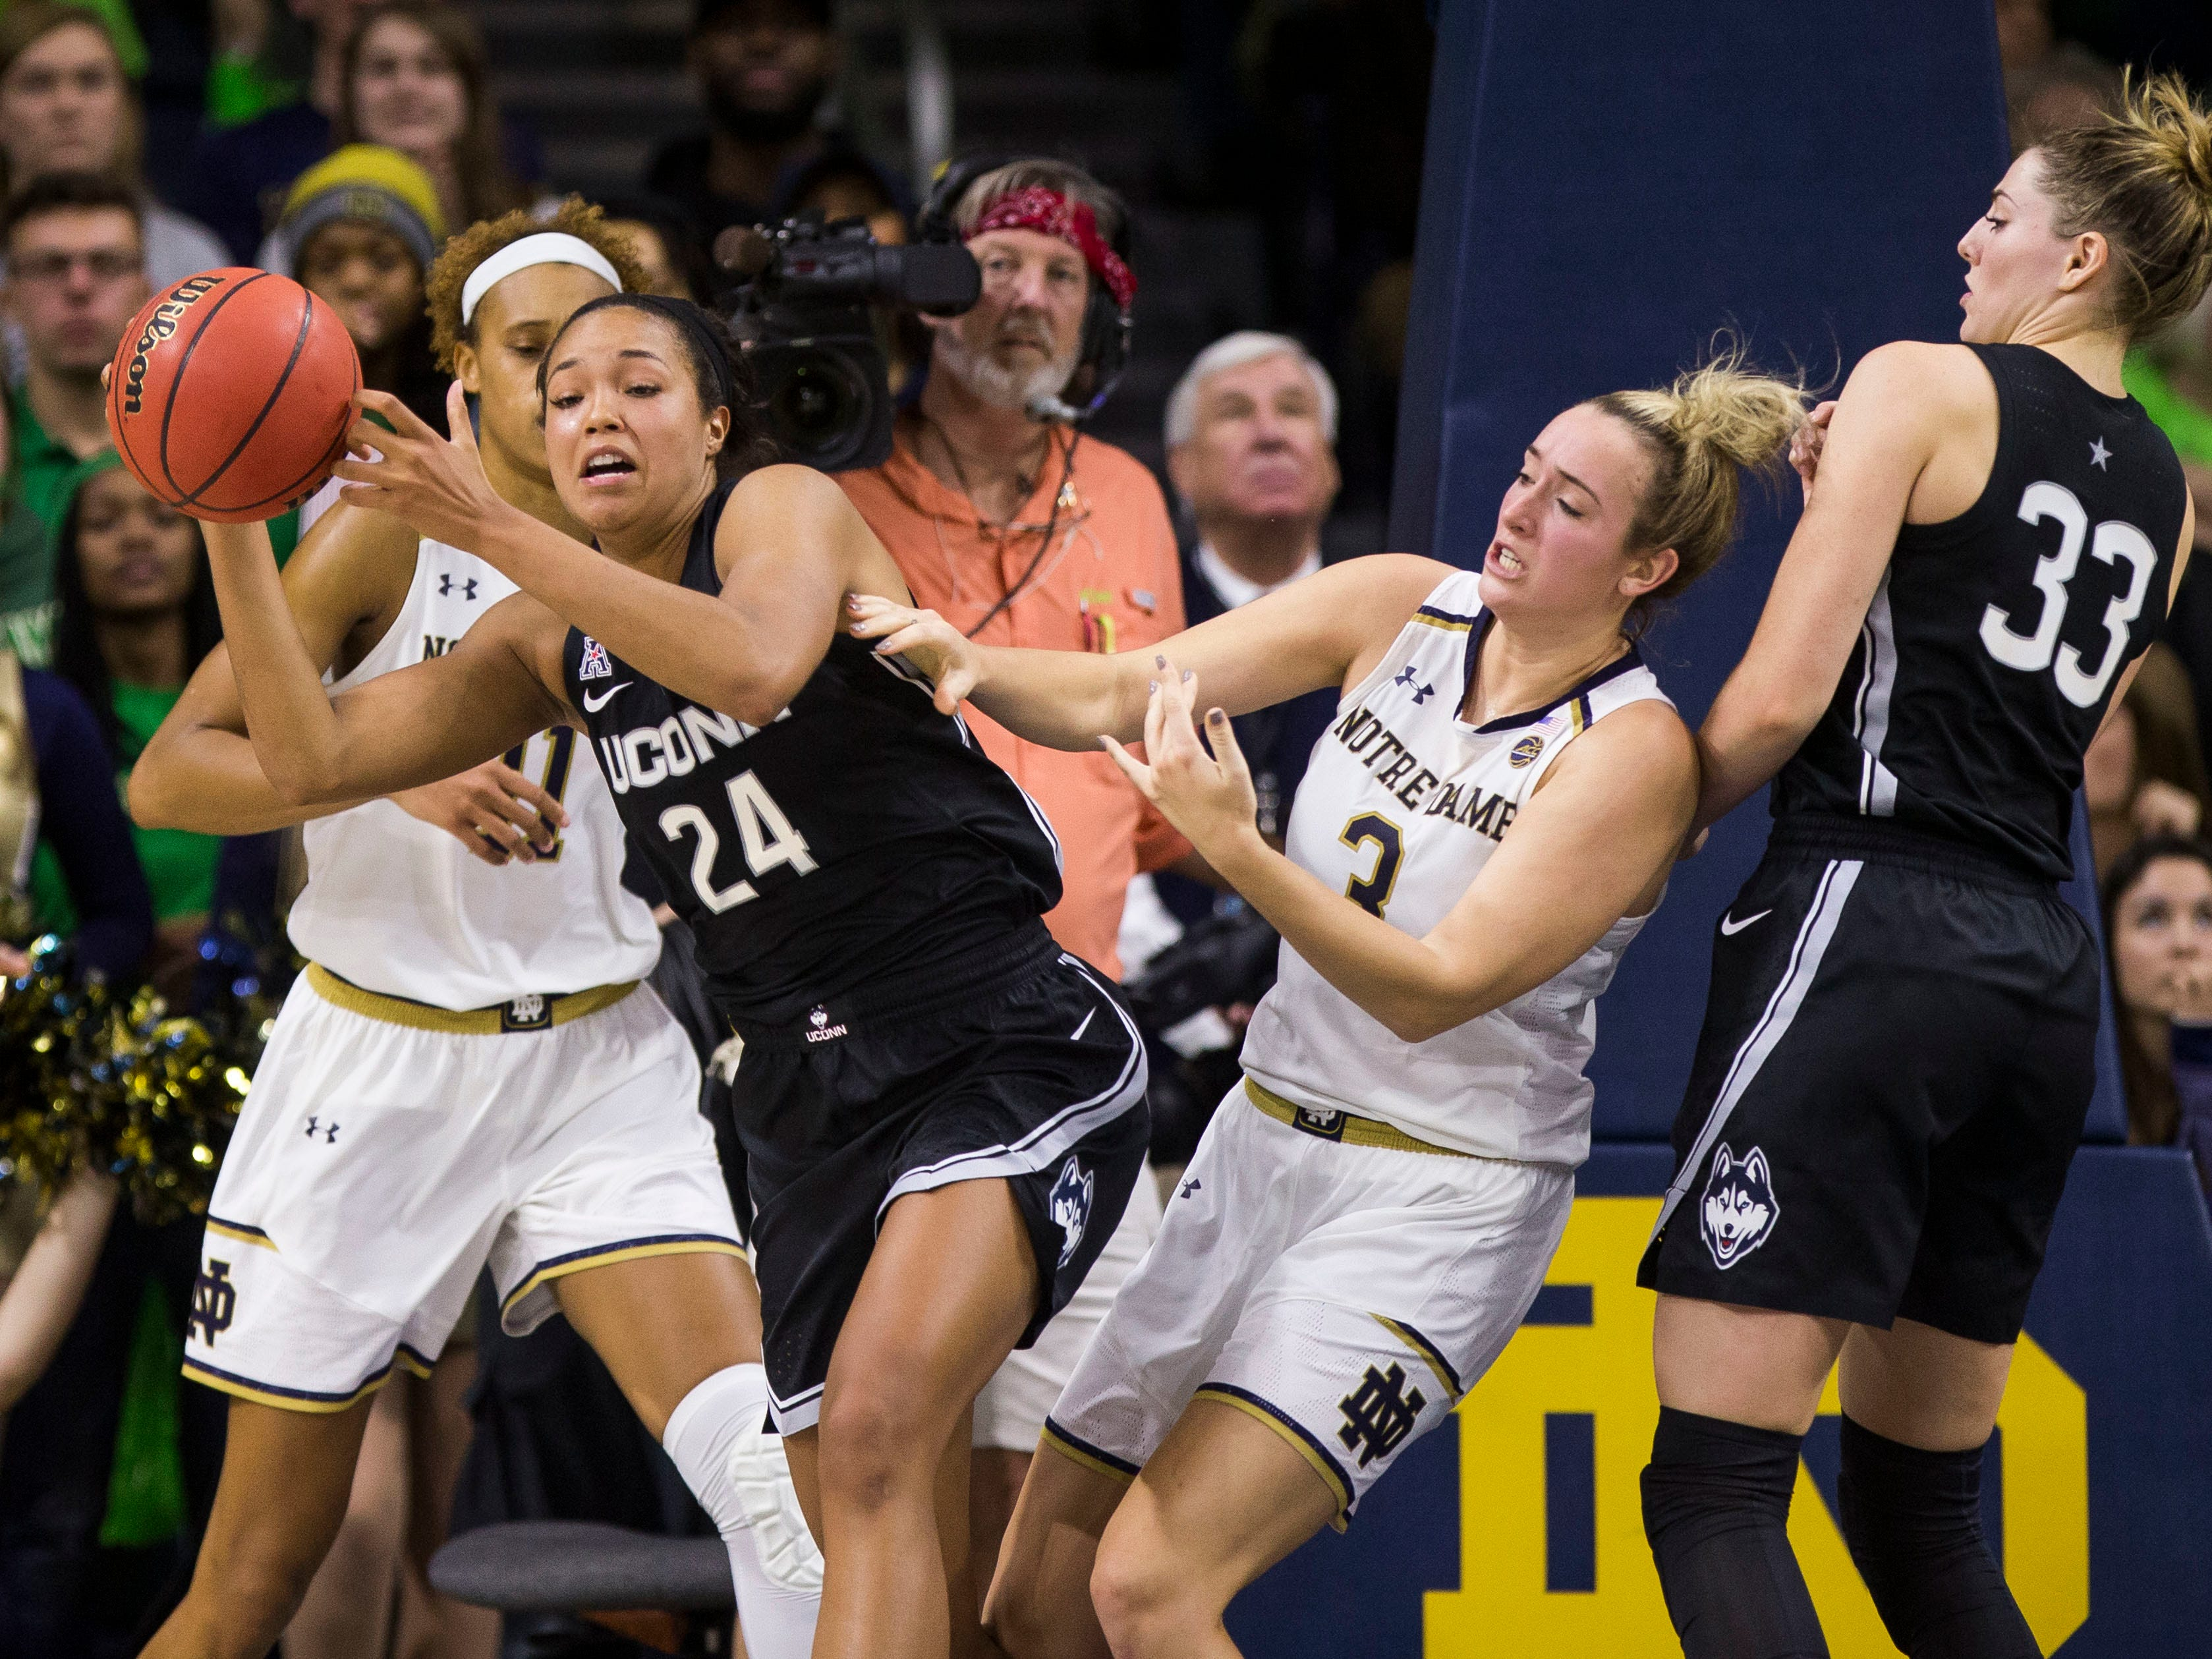 Connecticut's Napheesa Collier (24) passes the ball away after coming down with a rebound between Notre Dame's Brianna Turner, left, and Marina Mabrey (3) during the second half of an NCAA college basketball game Sunday, Dec. 2, 2018, in South Bend, Ind. Connecticut won 89-71.